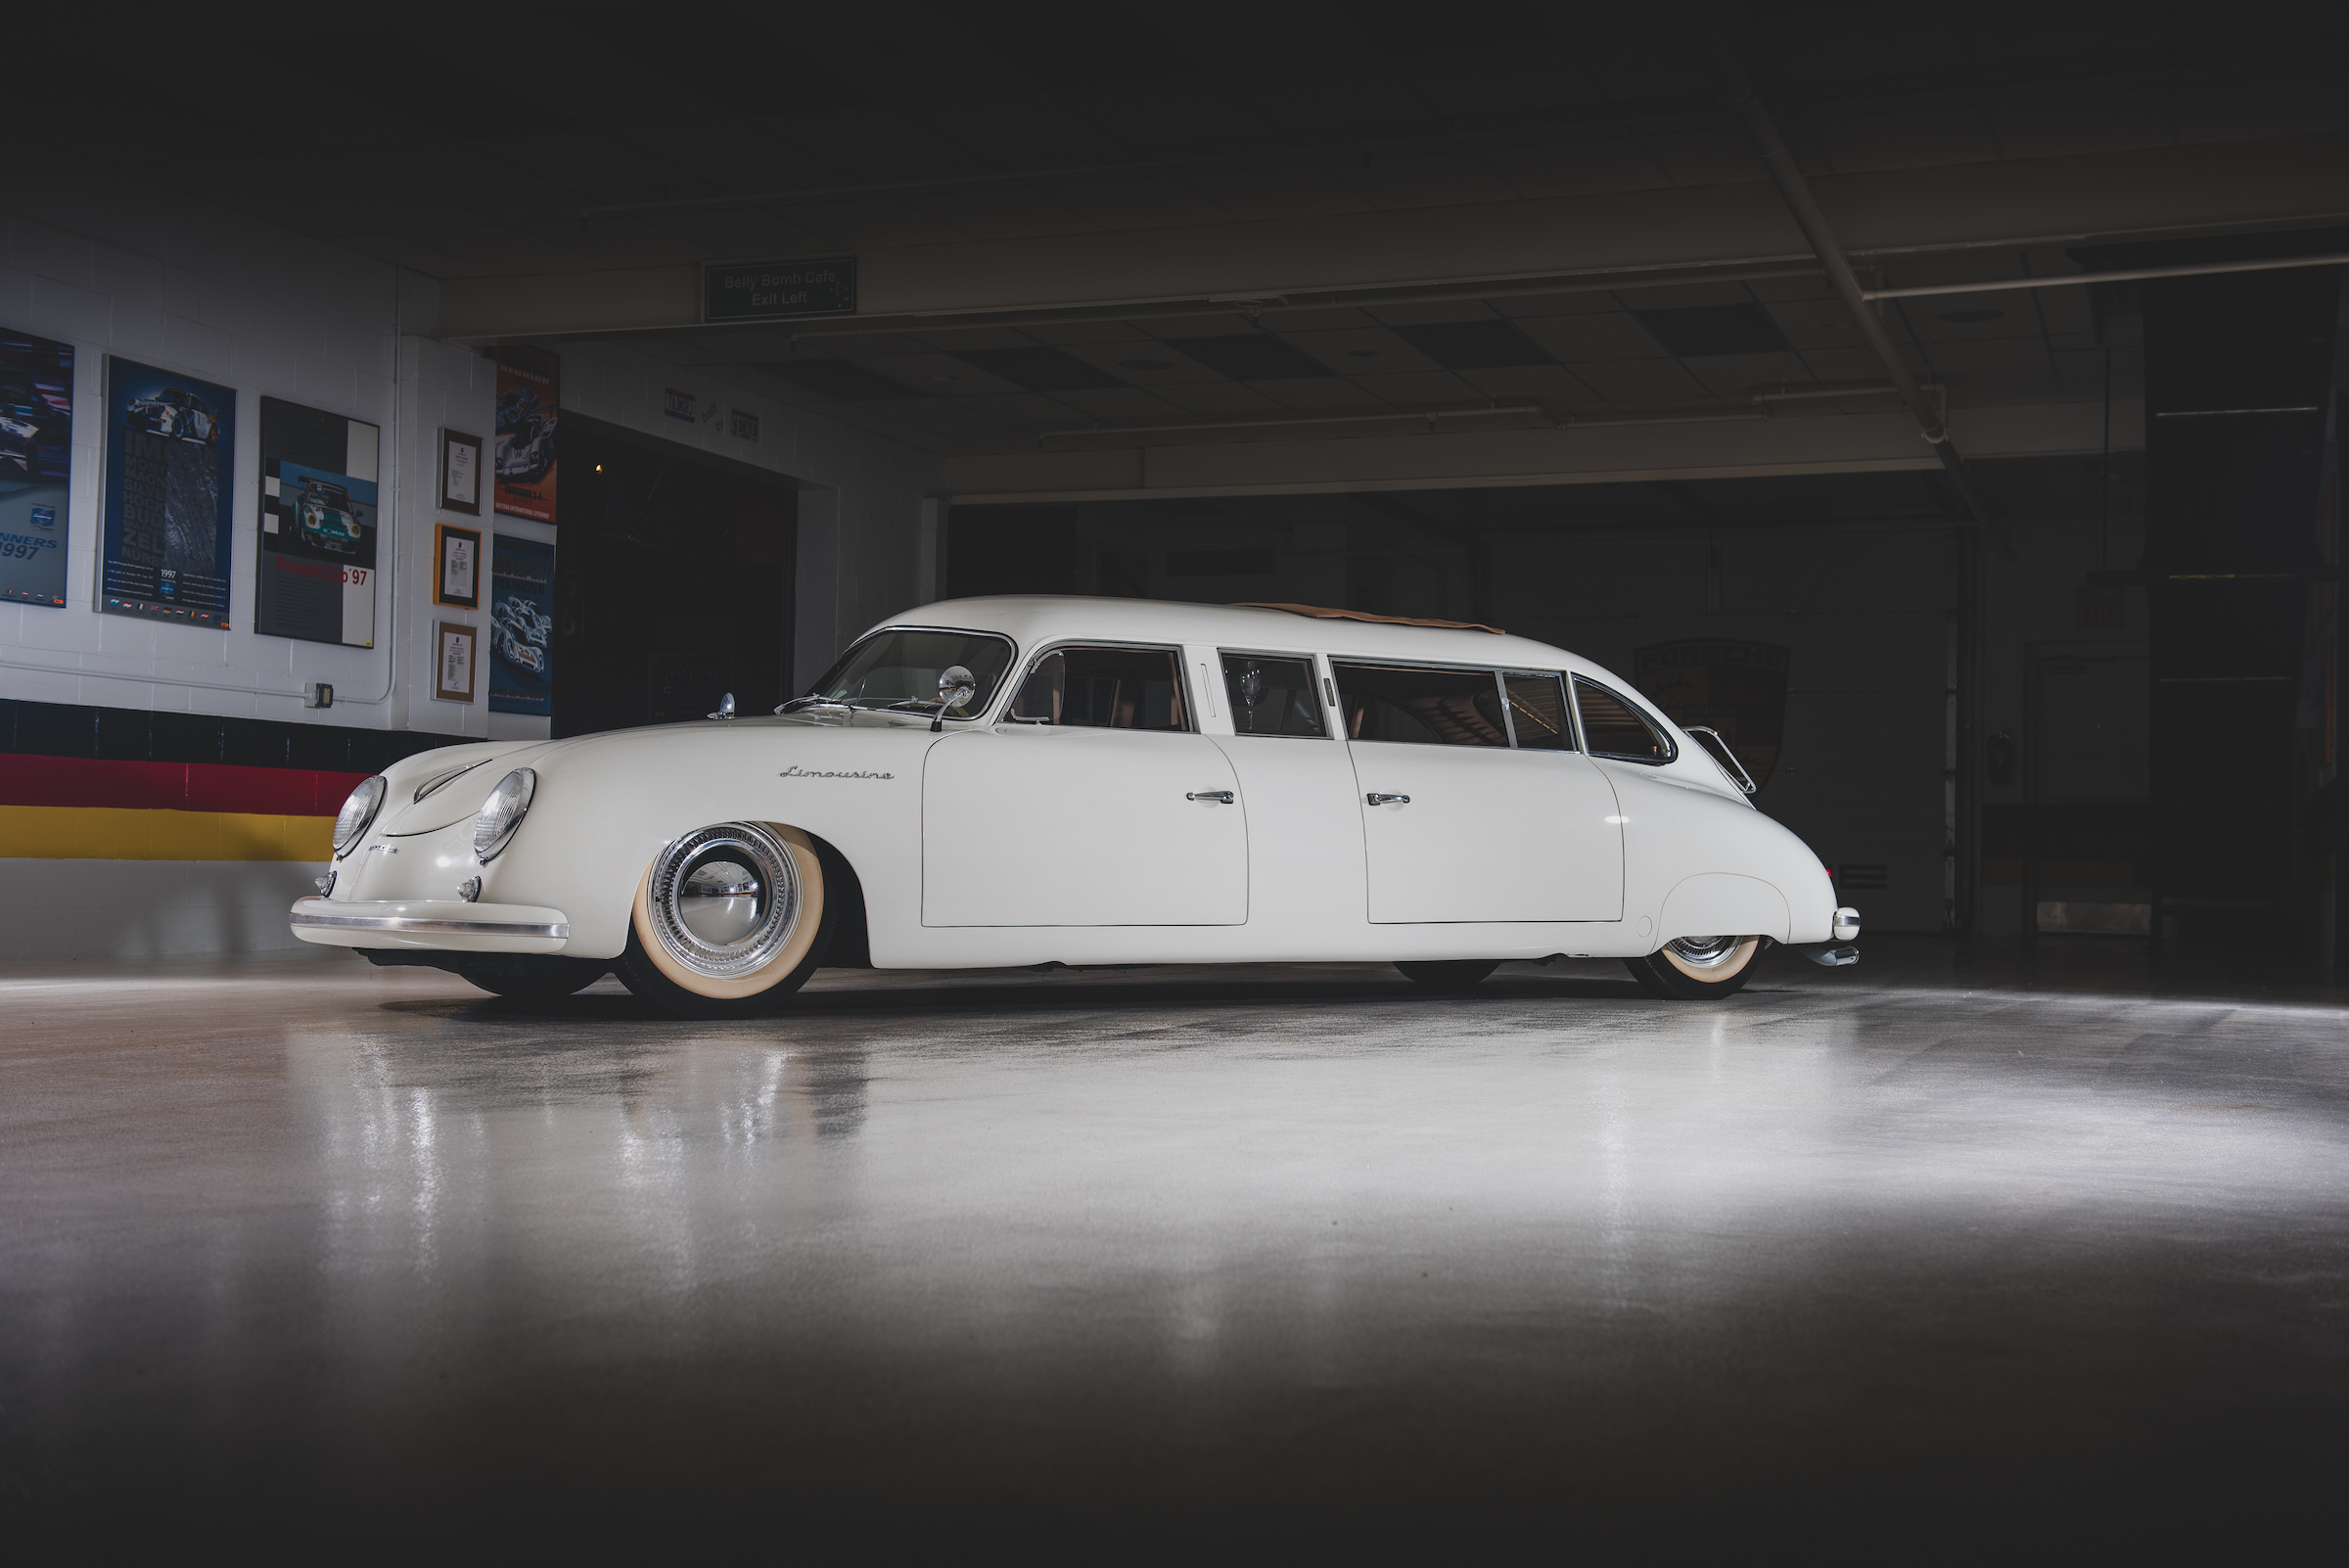 Now Solved* A Mysterious Porsche 356 Limousine - Can You